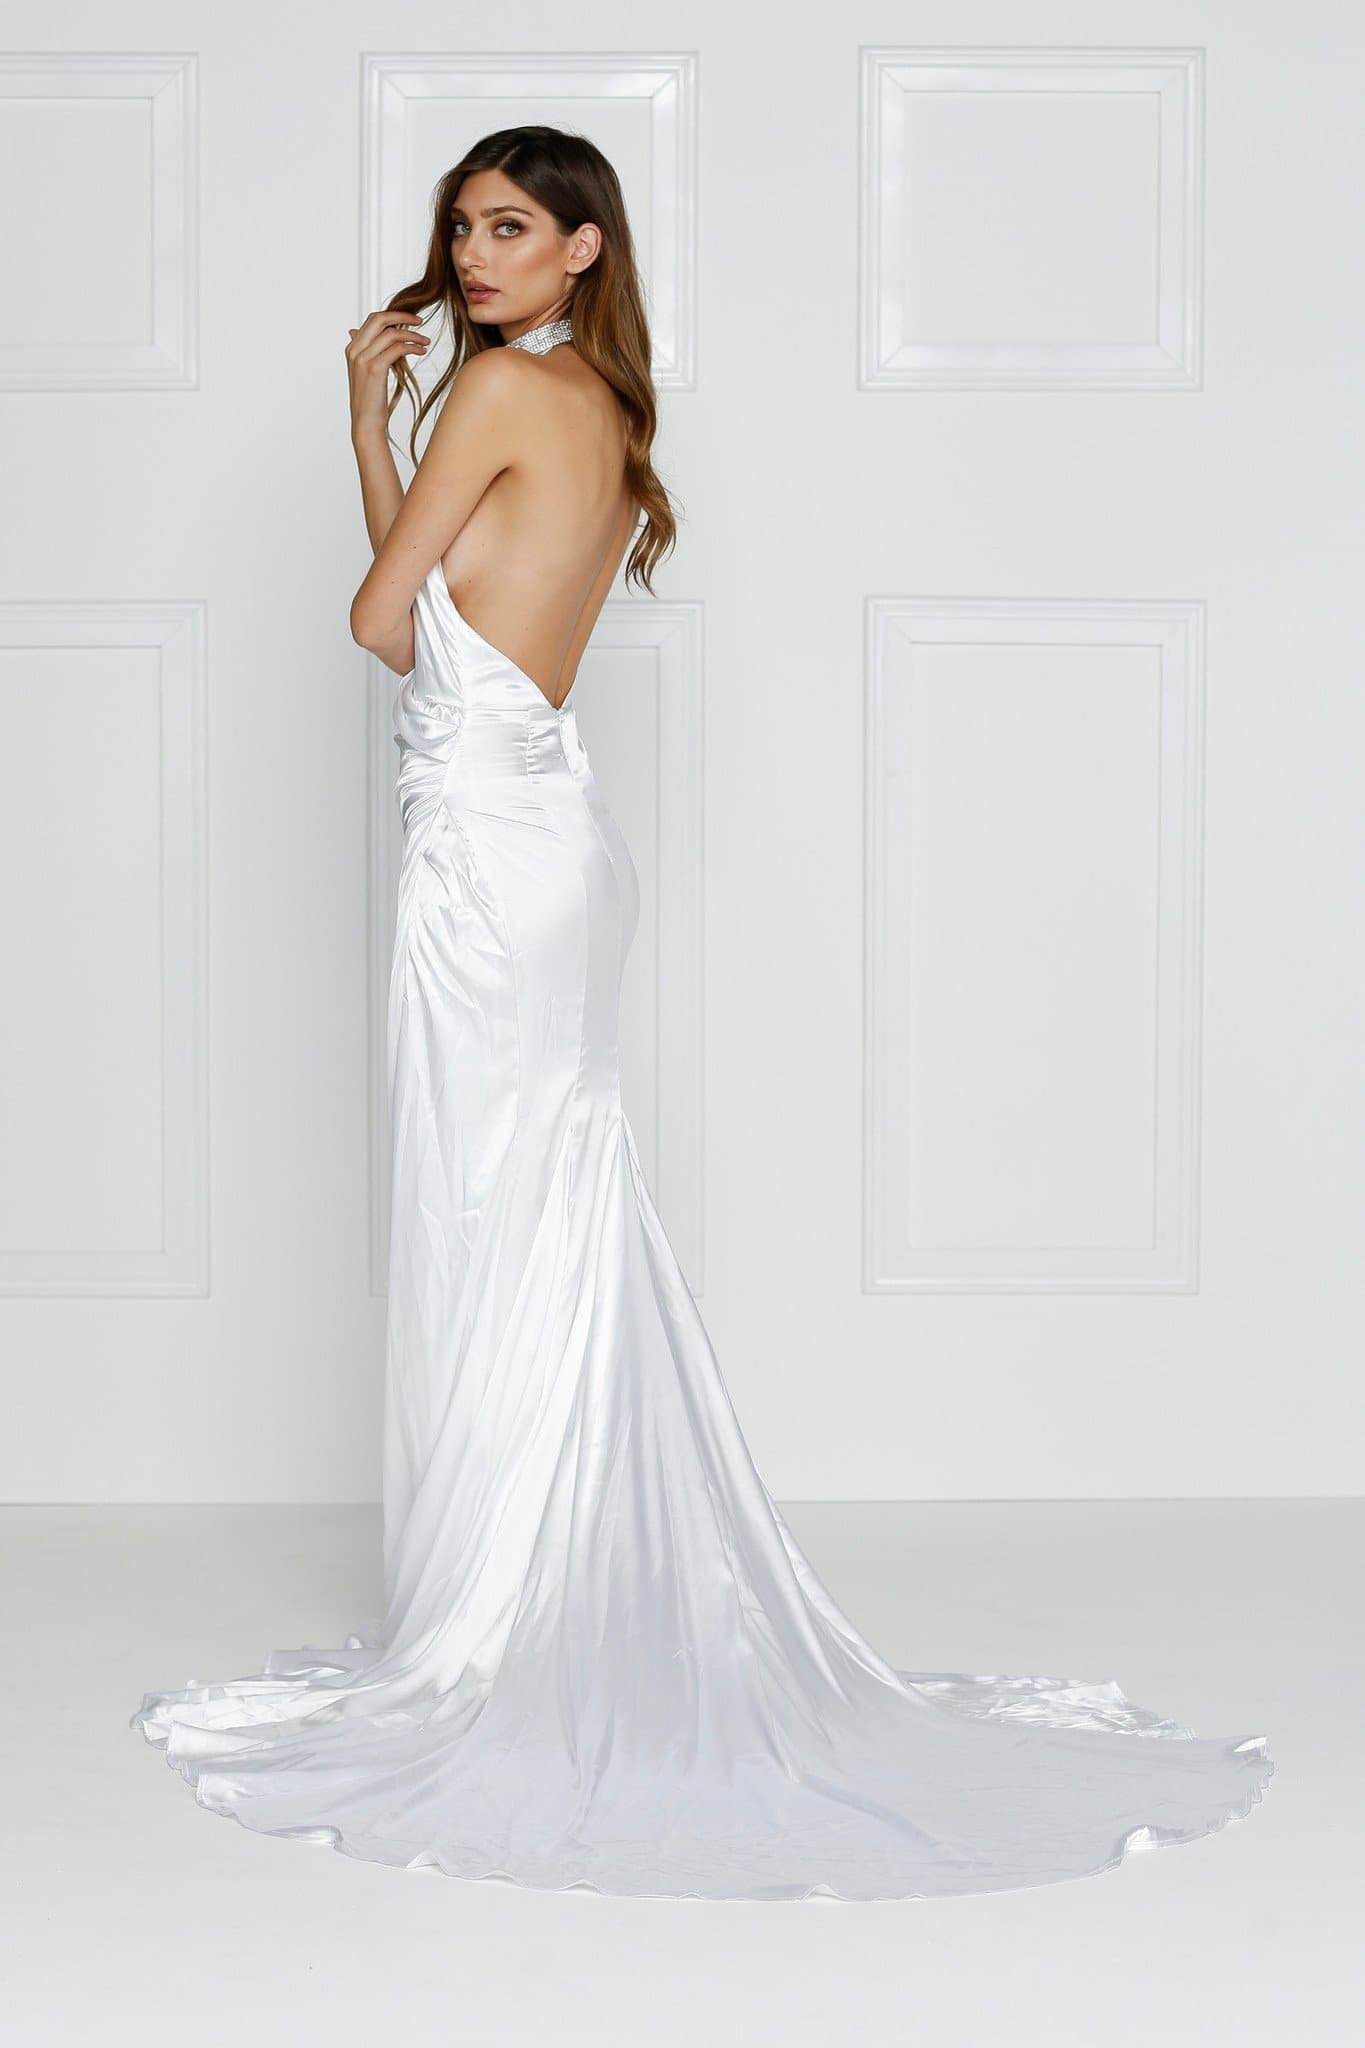 Guinevere Luxe Satin Gown - White – A&N Boutique